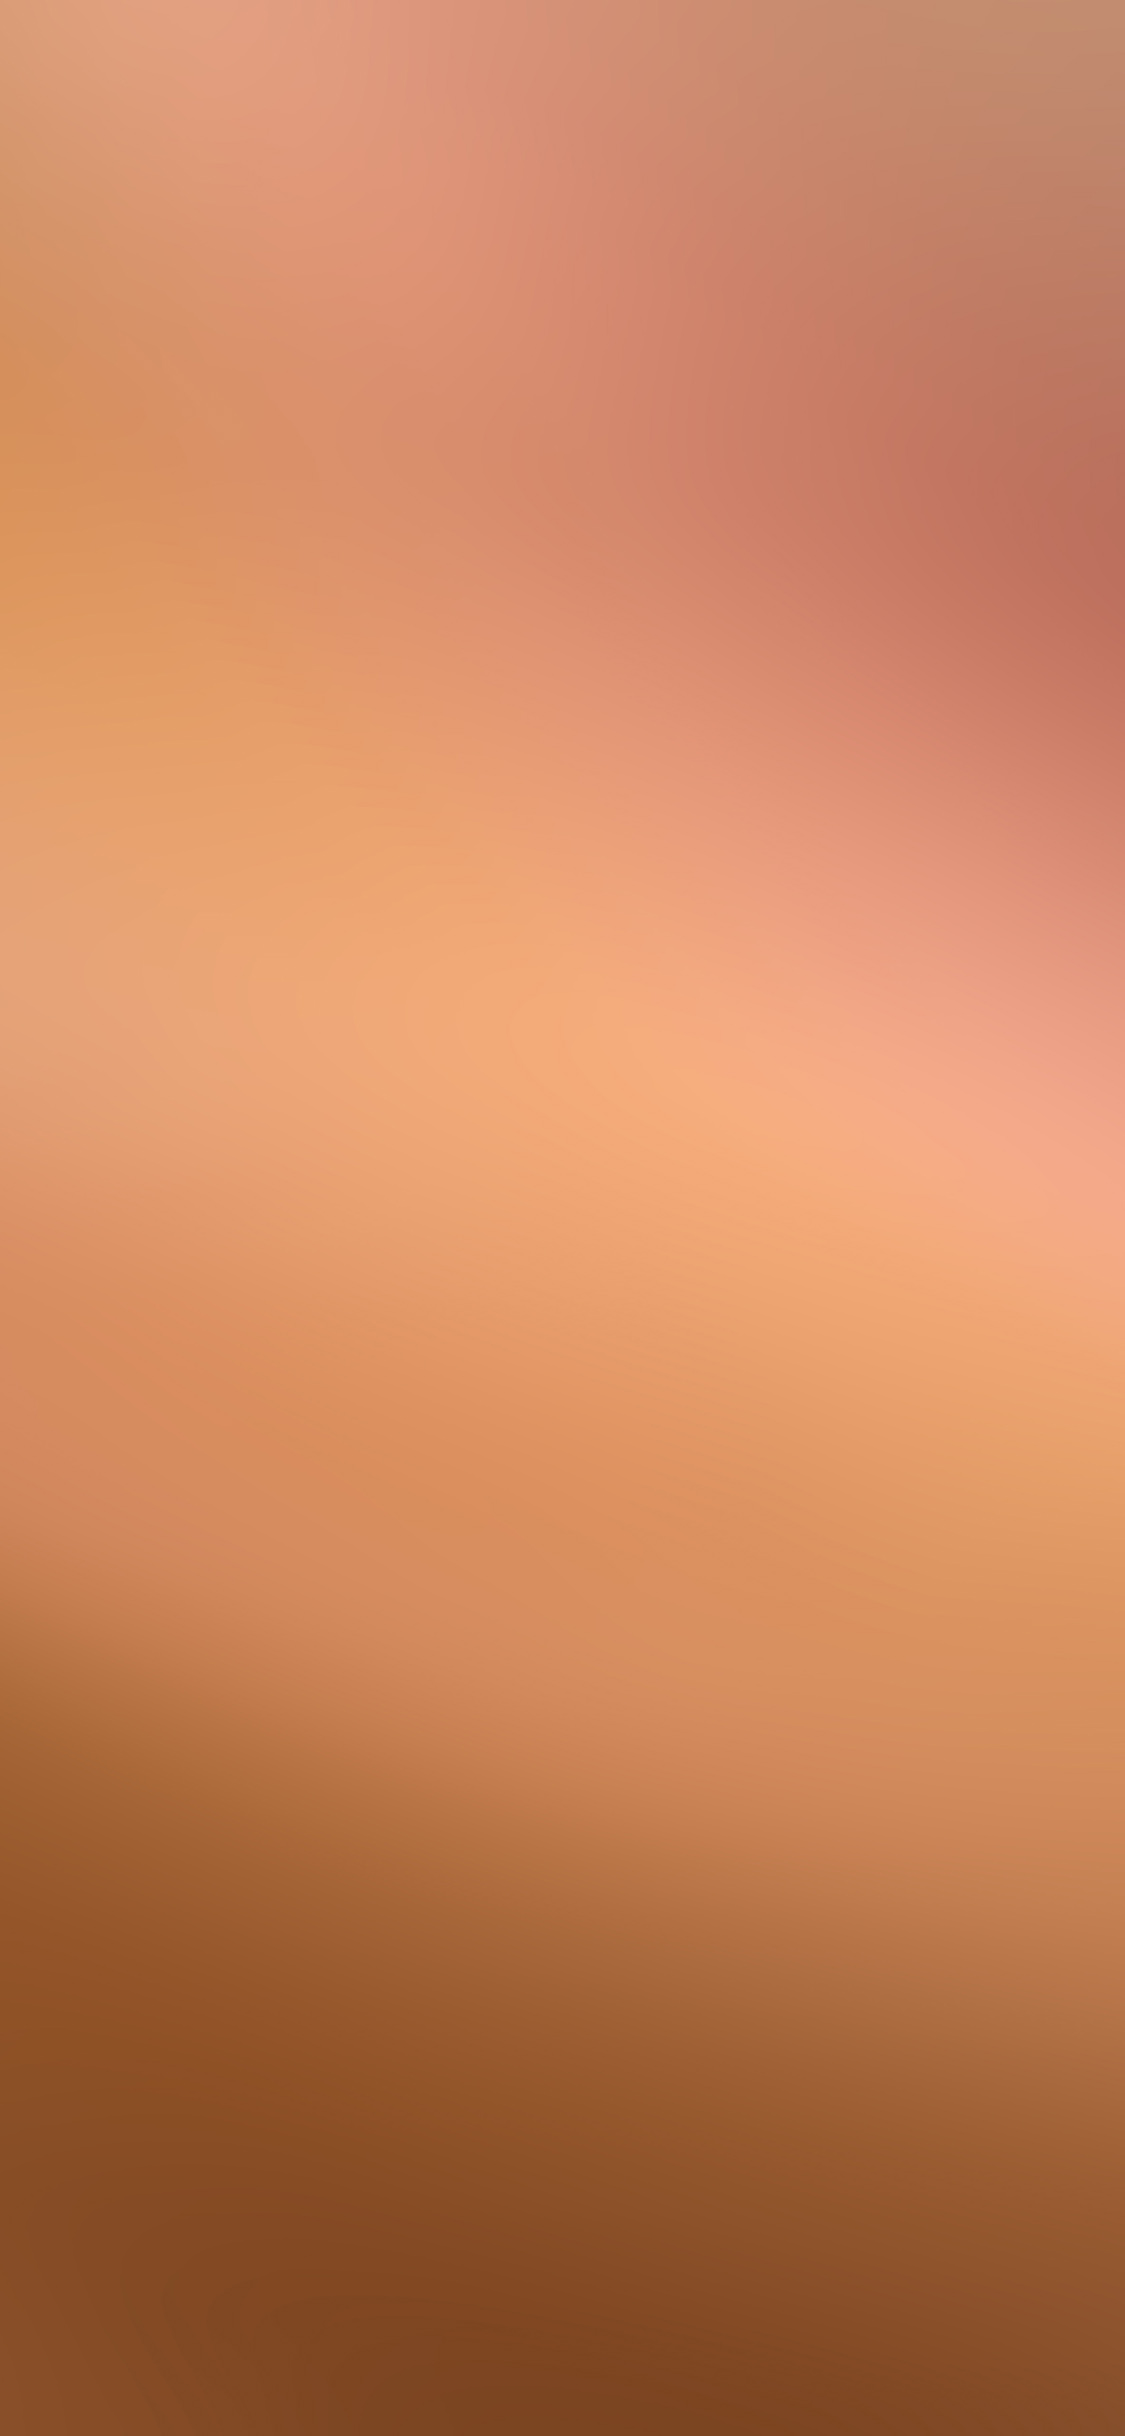 iPhoneXpapers.com-Apple-iPhone-wallpaper-se93-light-red-orange-love-gradation-blur